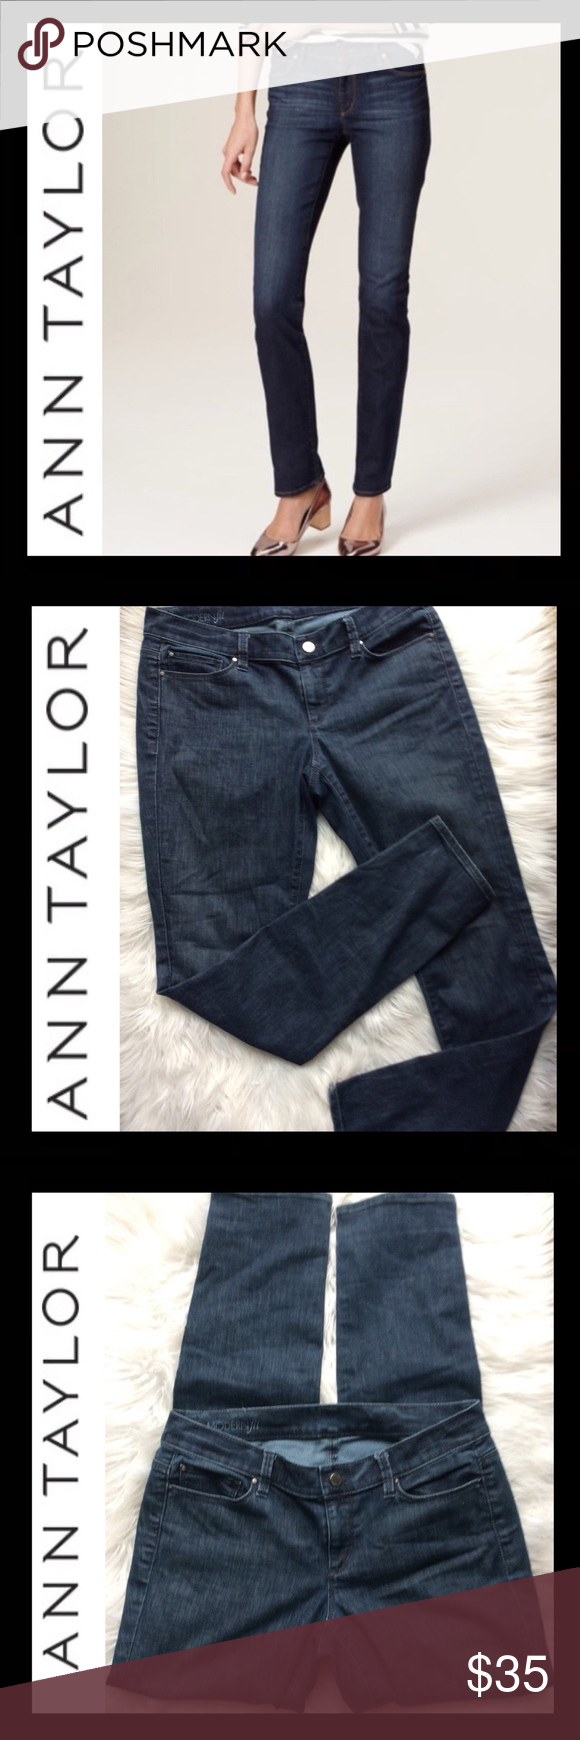 Ann Taylor Modern Fit Jeans In 2020 Jeans Fit Modern Fit Ann Taylor